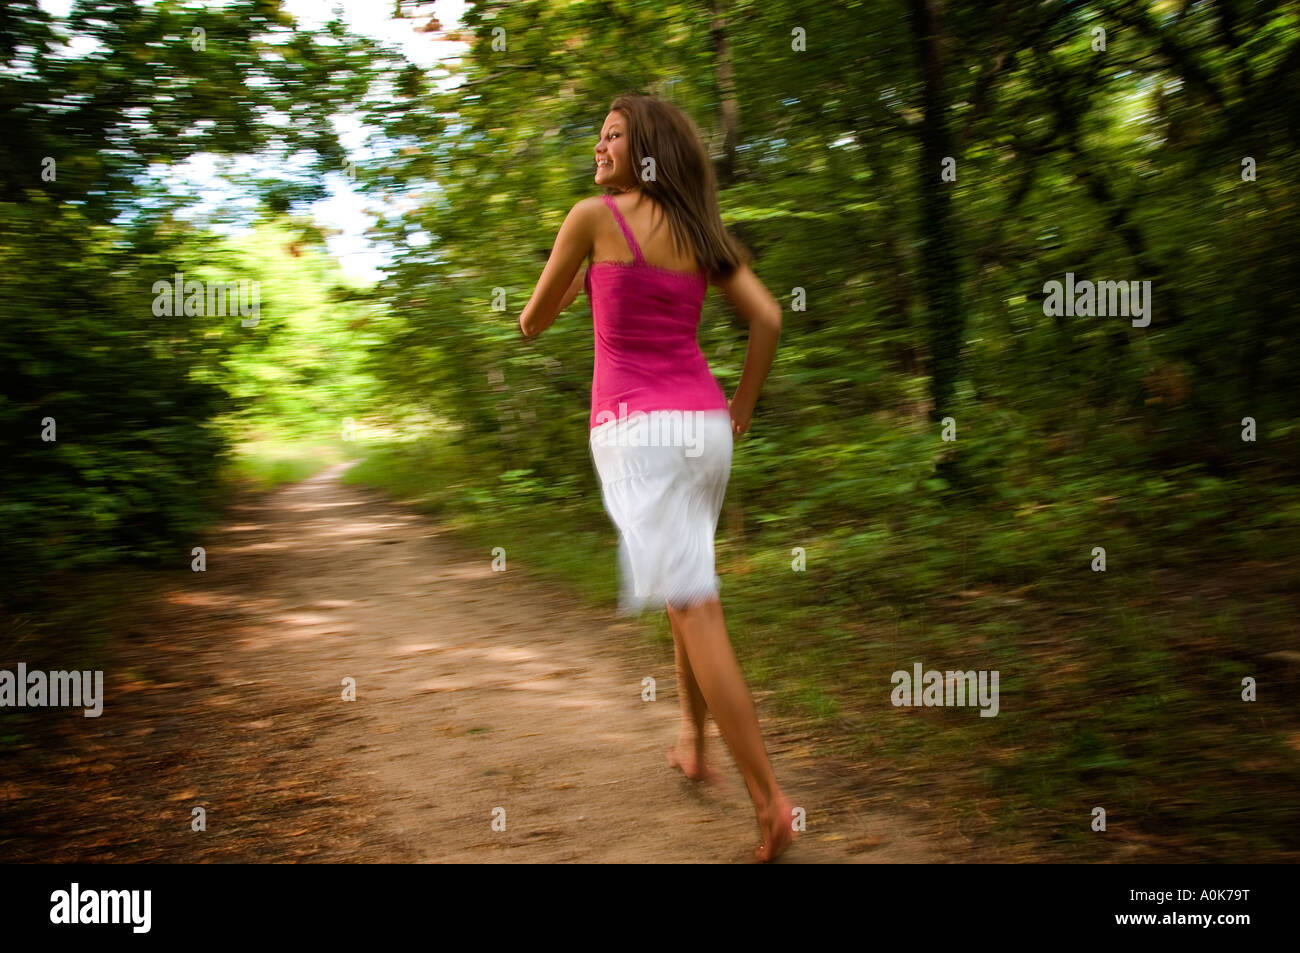 Dating a girl who runs away